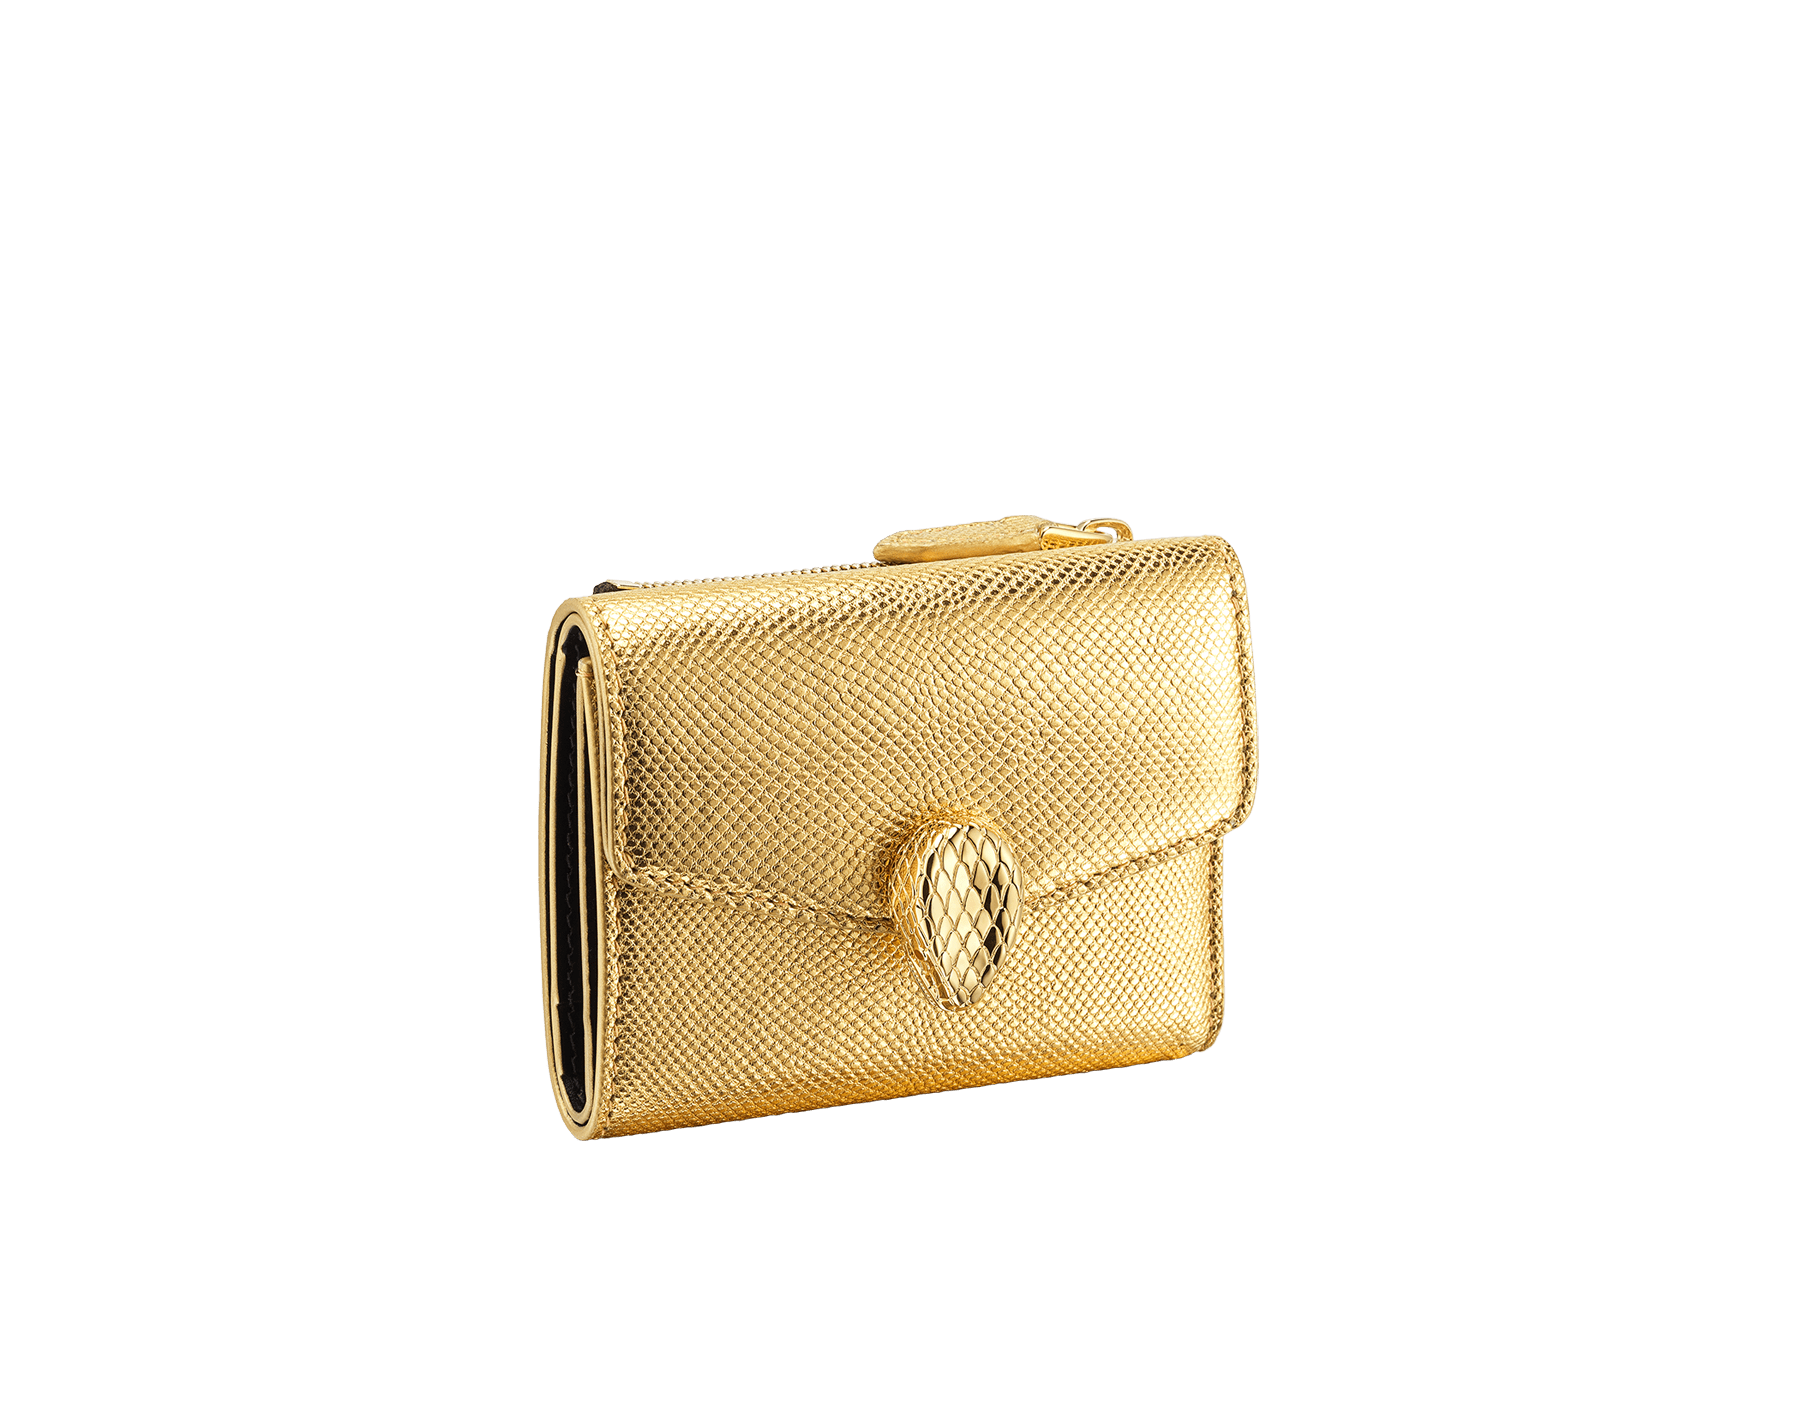 "Slender, compact ""Serpenti Forever"" wallet in ""Molten"" gold karung skin and black calfskin, offering a touch of radiance for the Winter Holidays. New Serpenti head closure in gold-plated brass, complete with ruby-red enamel eyes. 290656 image 1"